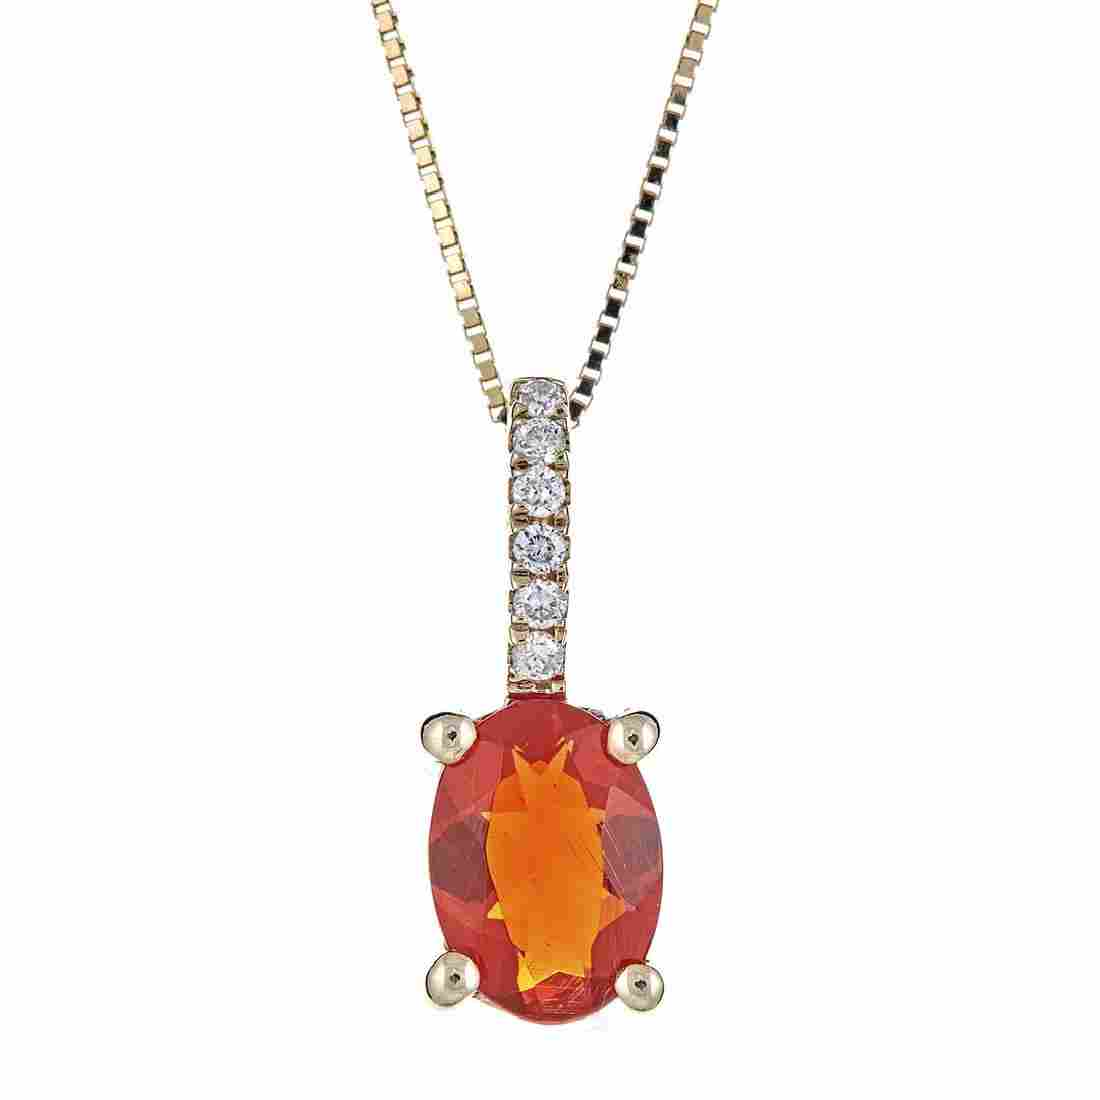 0.53 ctw Fire Opal and Diamond Pendant - 14KT Yellow